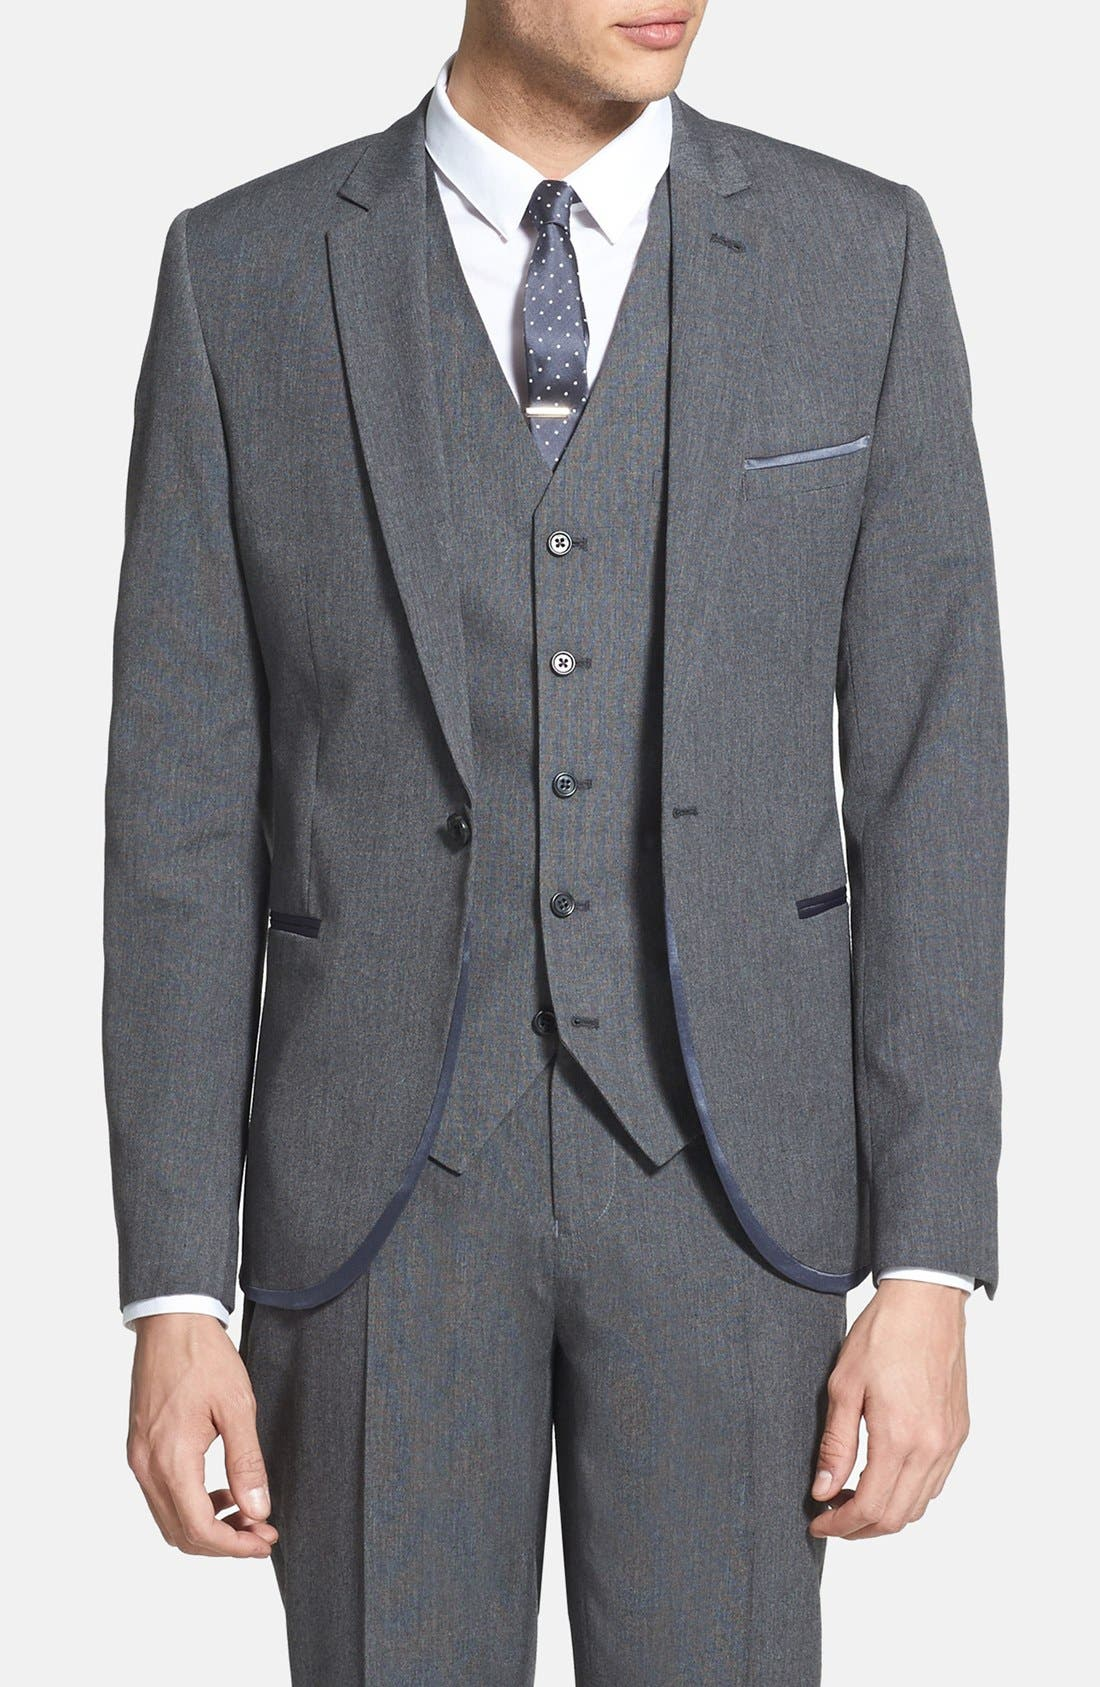 Alternate Image 1 Selected - Topman Skinny Fit Satin Trim Grey Suit Jacket